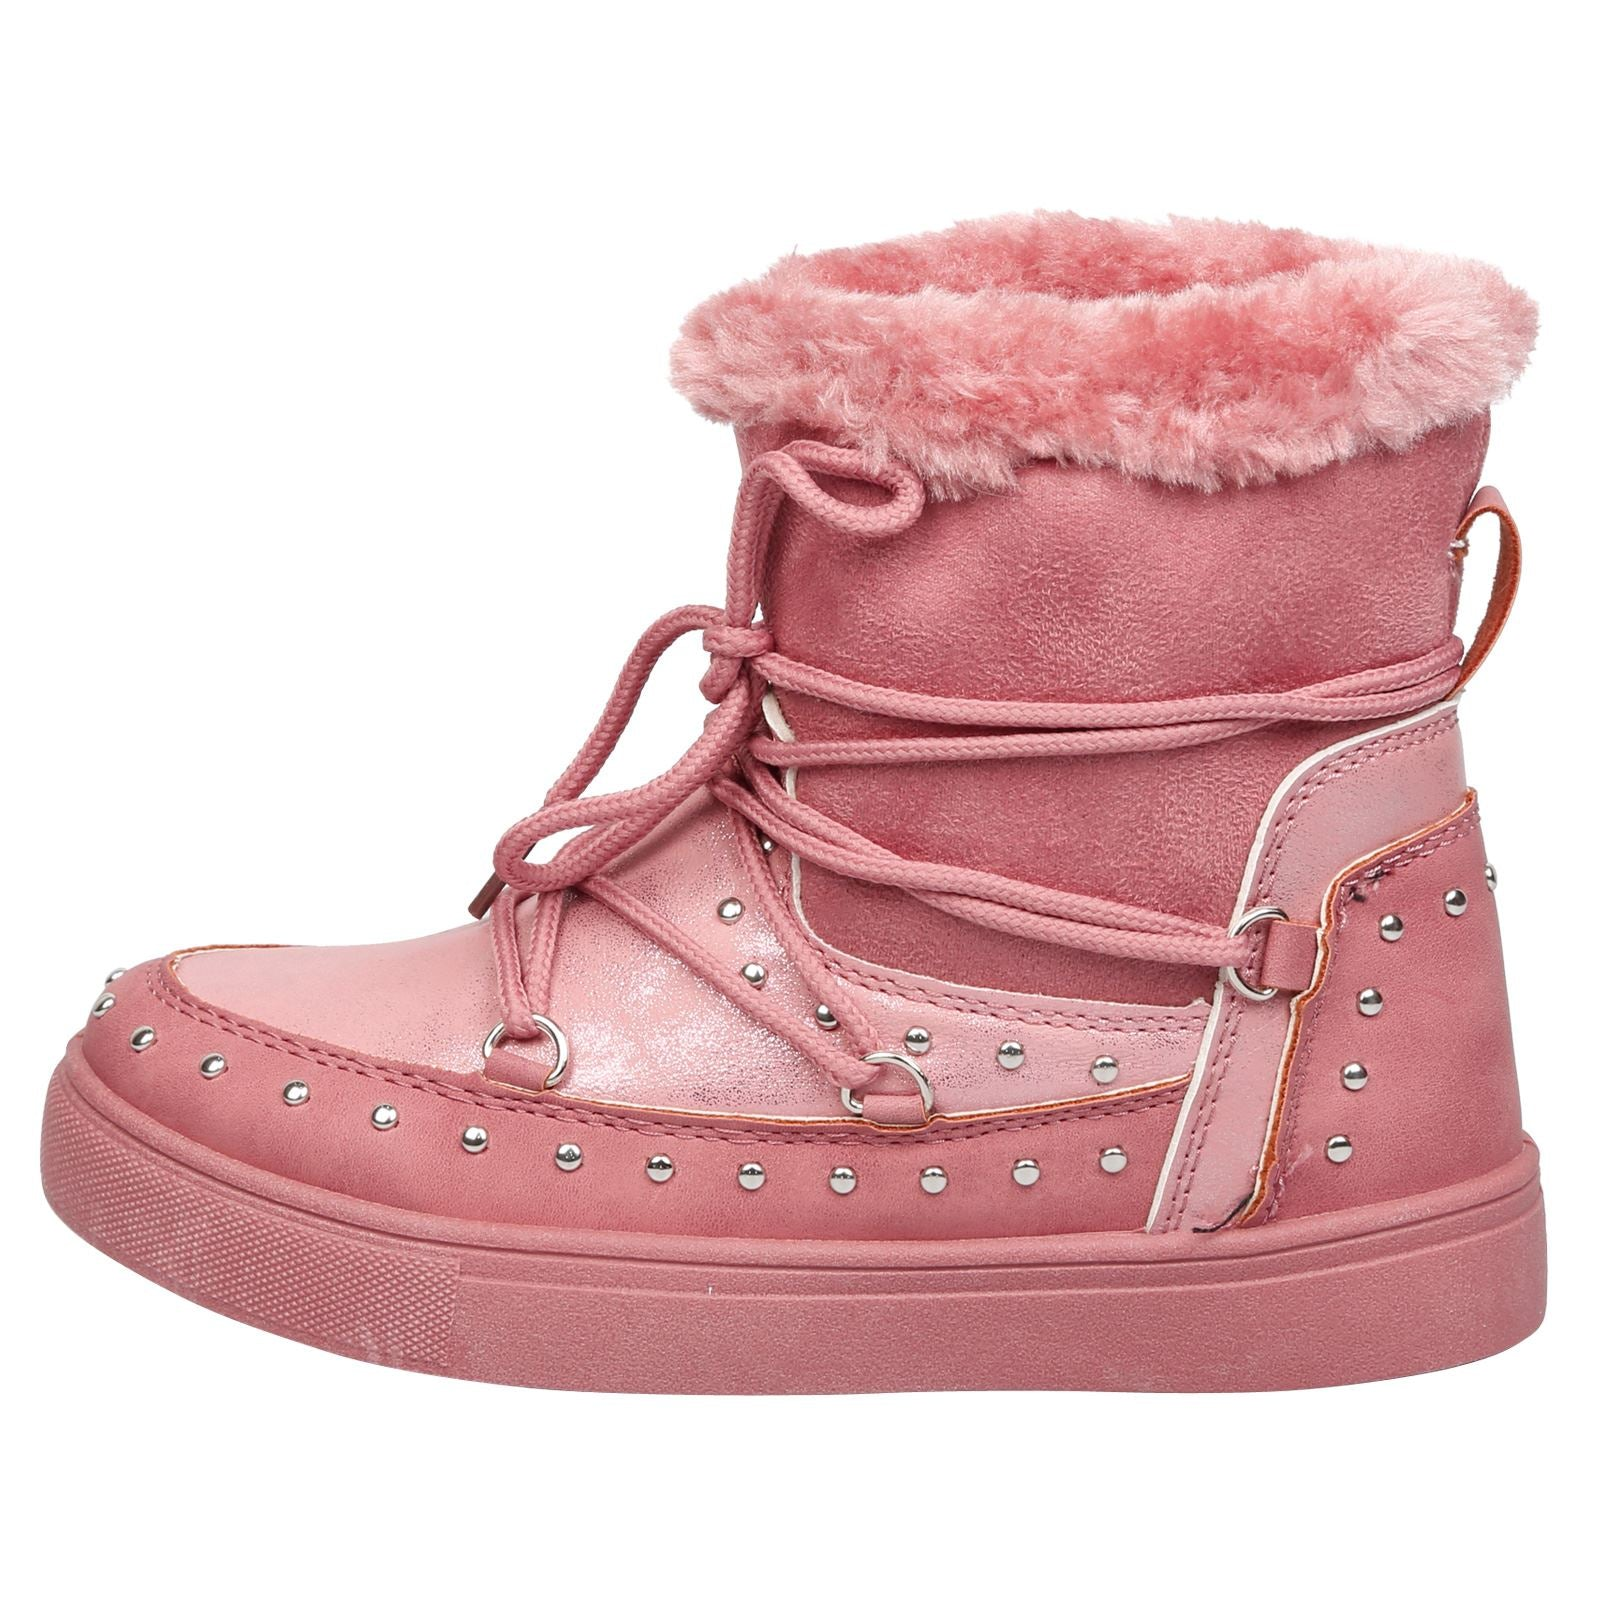 Cecilia Girls Fur Lined Boots in Pink